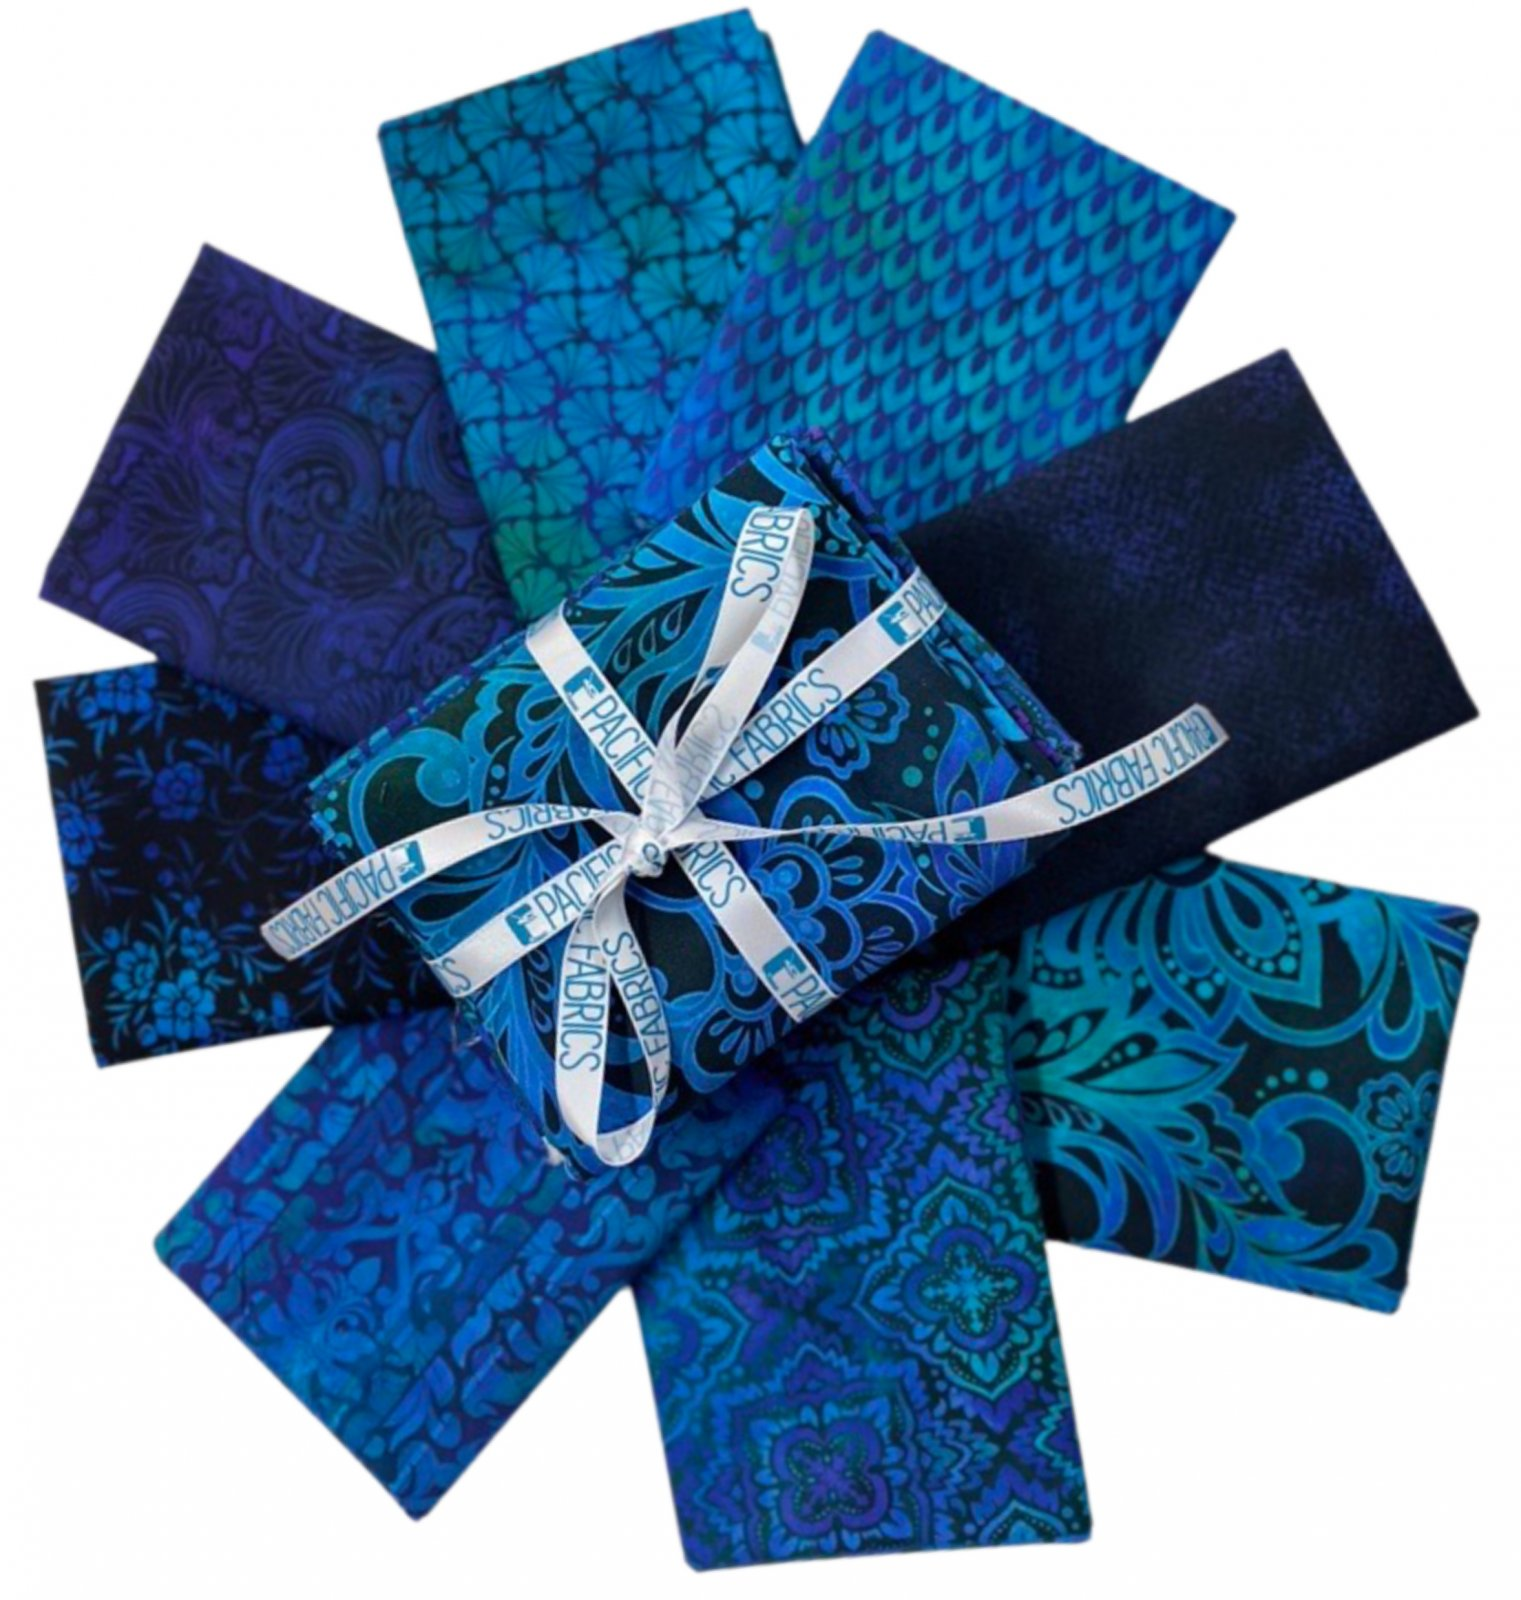 In the Beginning, Tapestry in BLUE Fat Quarter Bundle 8 pc